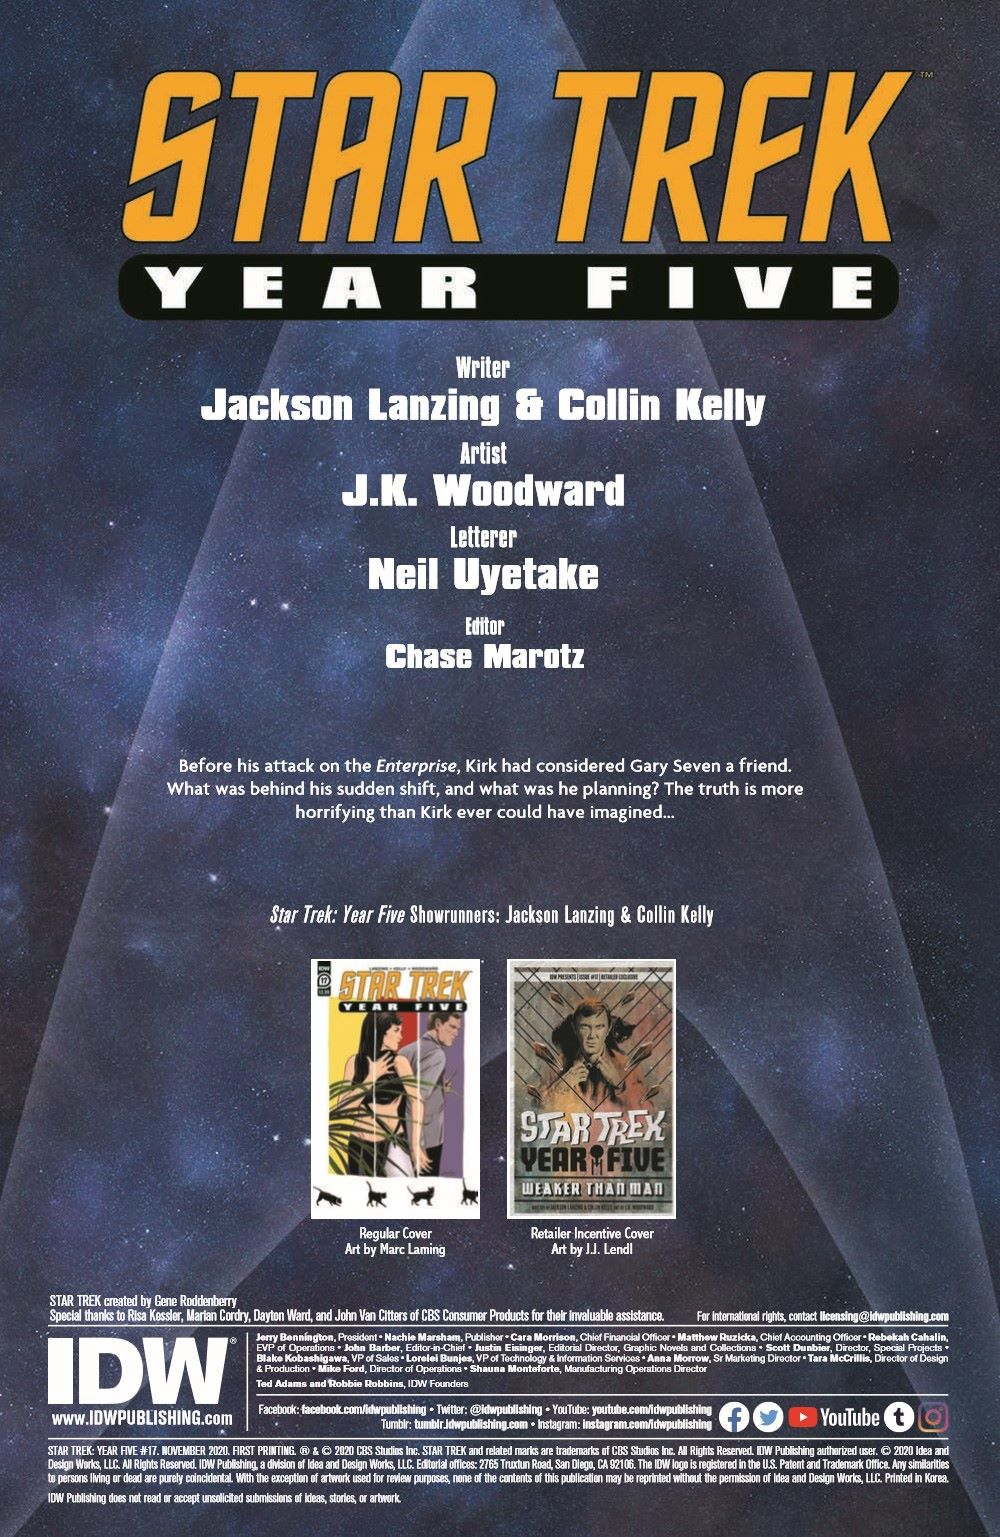 ST_YearFive17-pr-2 ComicList Previews: STAR TREK YEAR FIVE #17